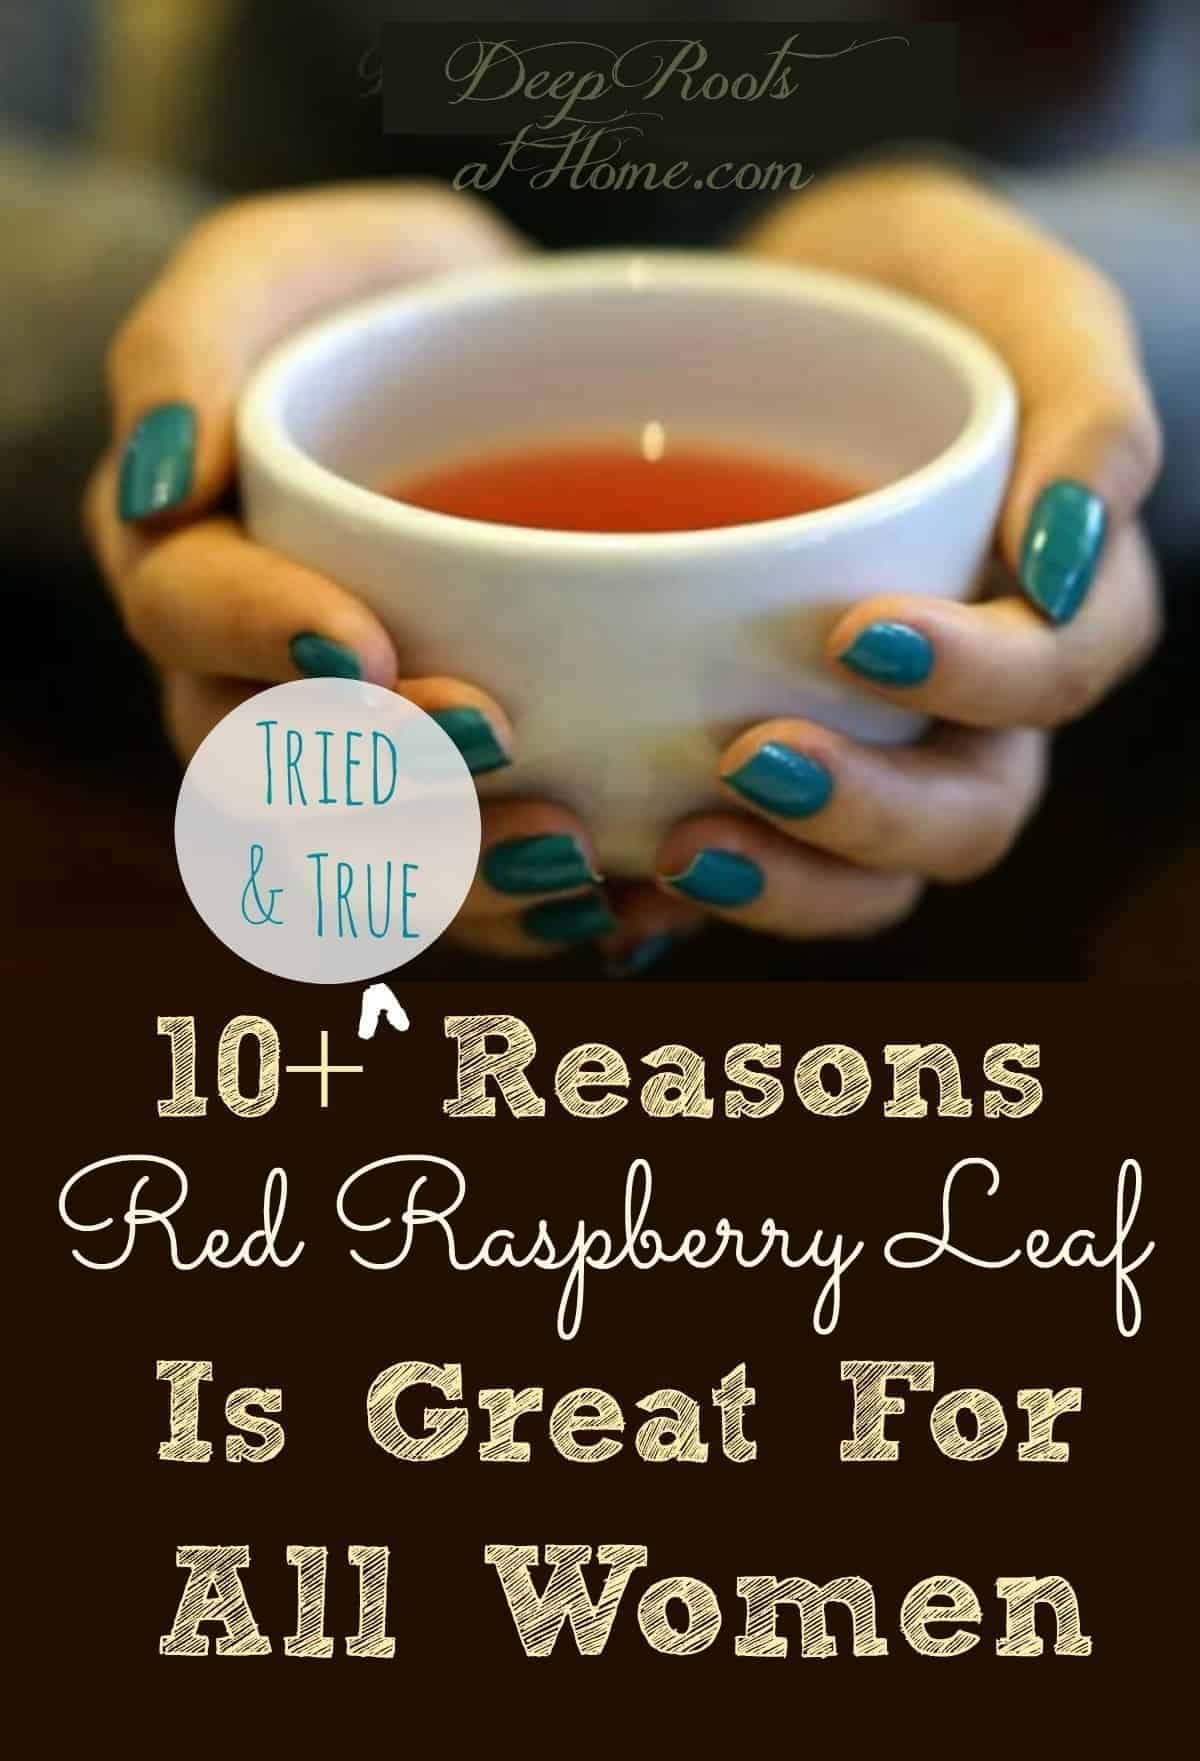 10 Tried & True Reasons Raspberry Leaf Is Great For All Women. A woman holding a cup of red raspberry tea. Pin image.